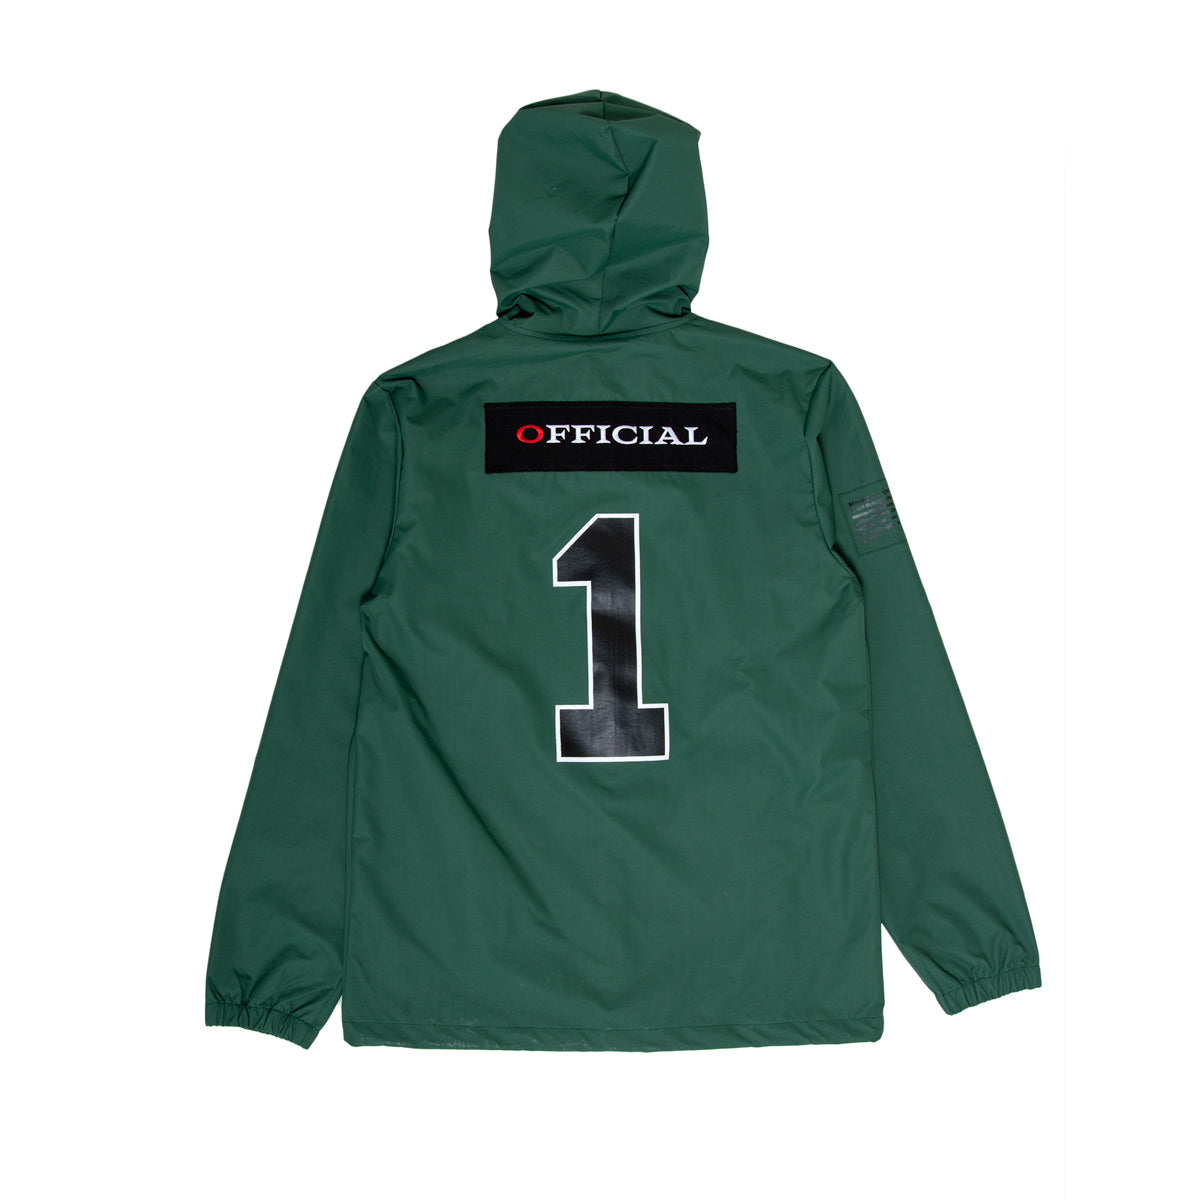 Official Green Rain Jacket